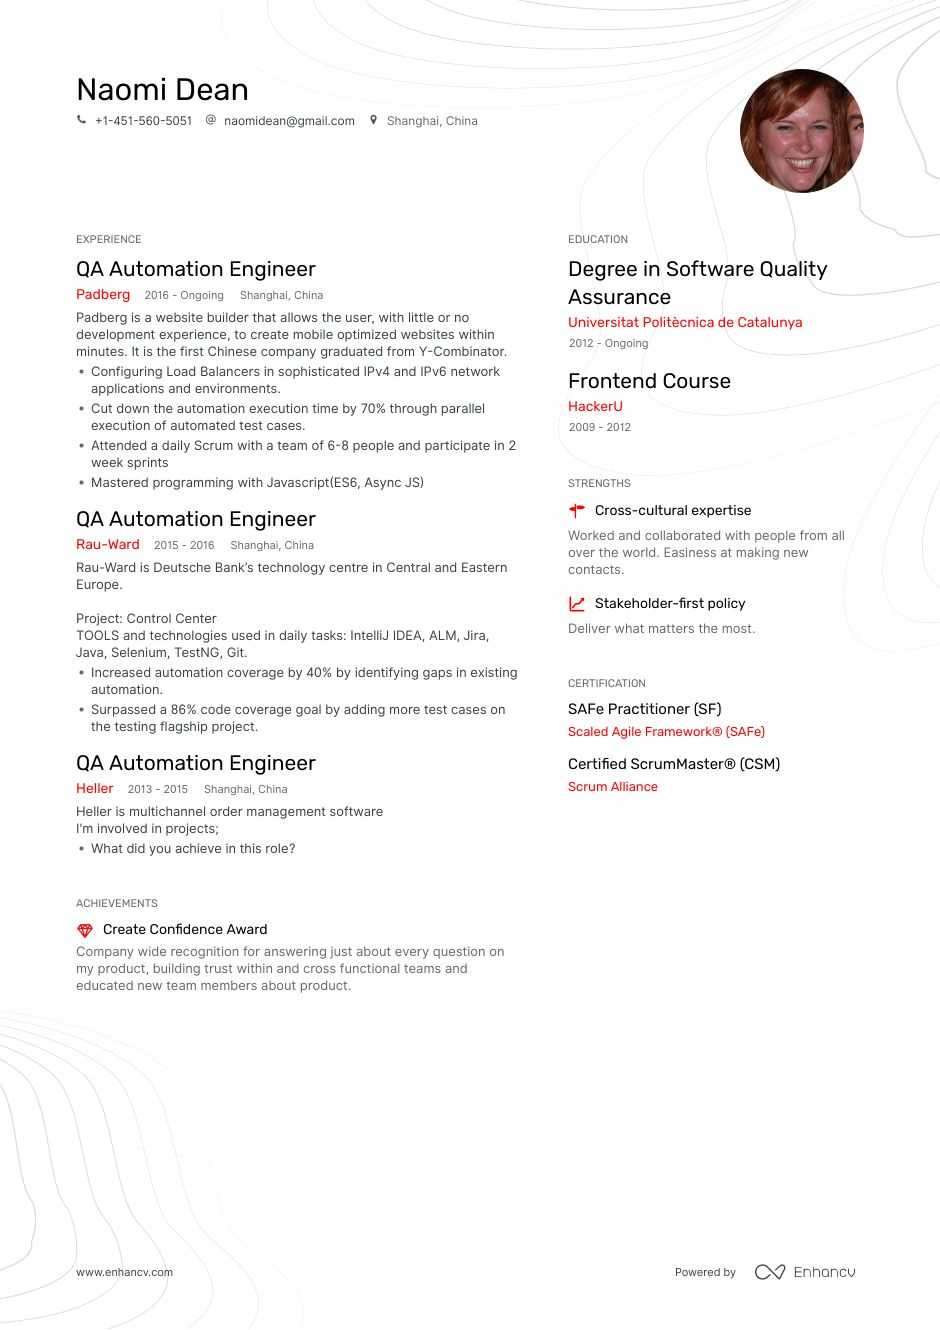 qa automation resume example for enhancv selenium years experience different examples Resume Selenium Resume For 8 Years Experience